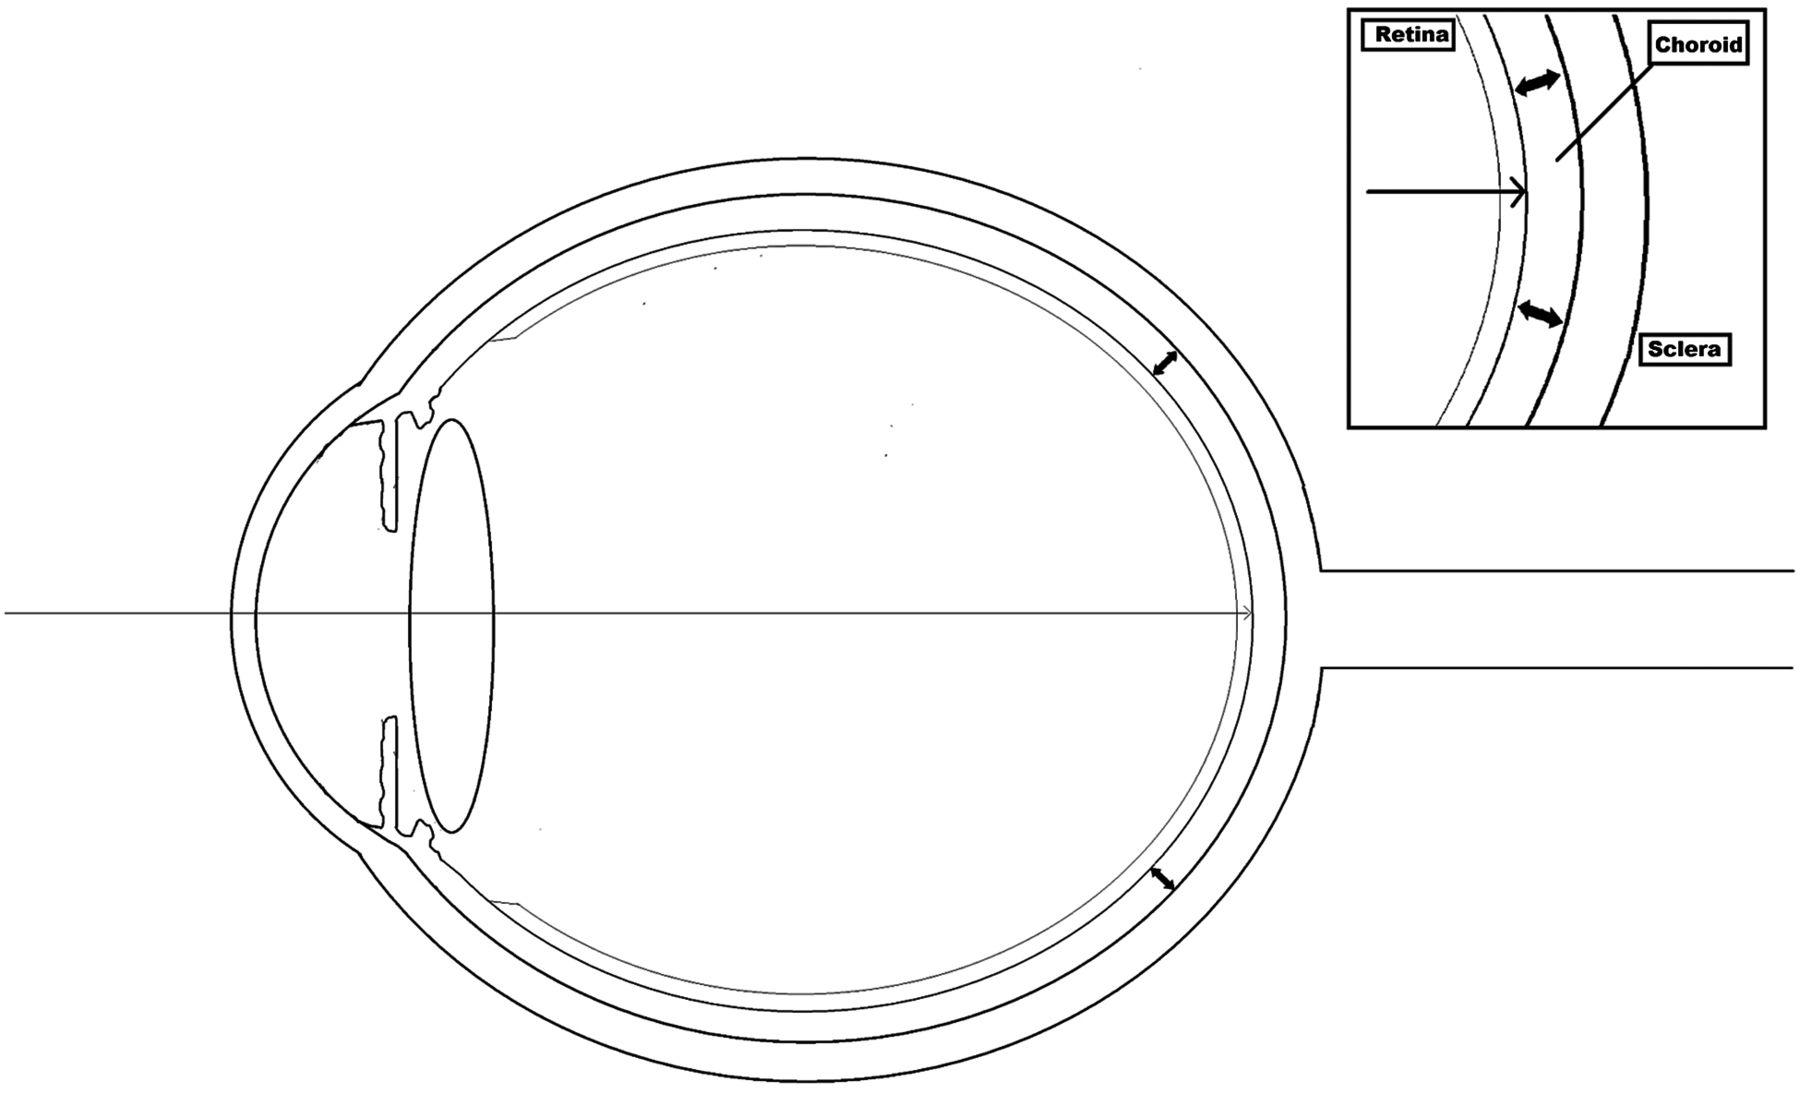 Change In Choroidal Thickness And Axial Length With Change